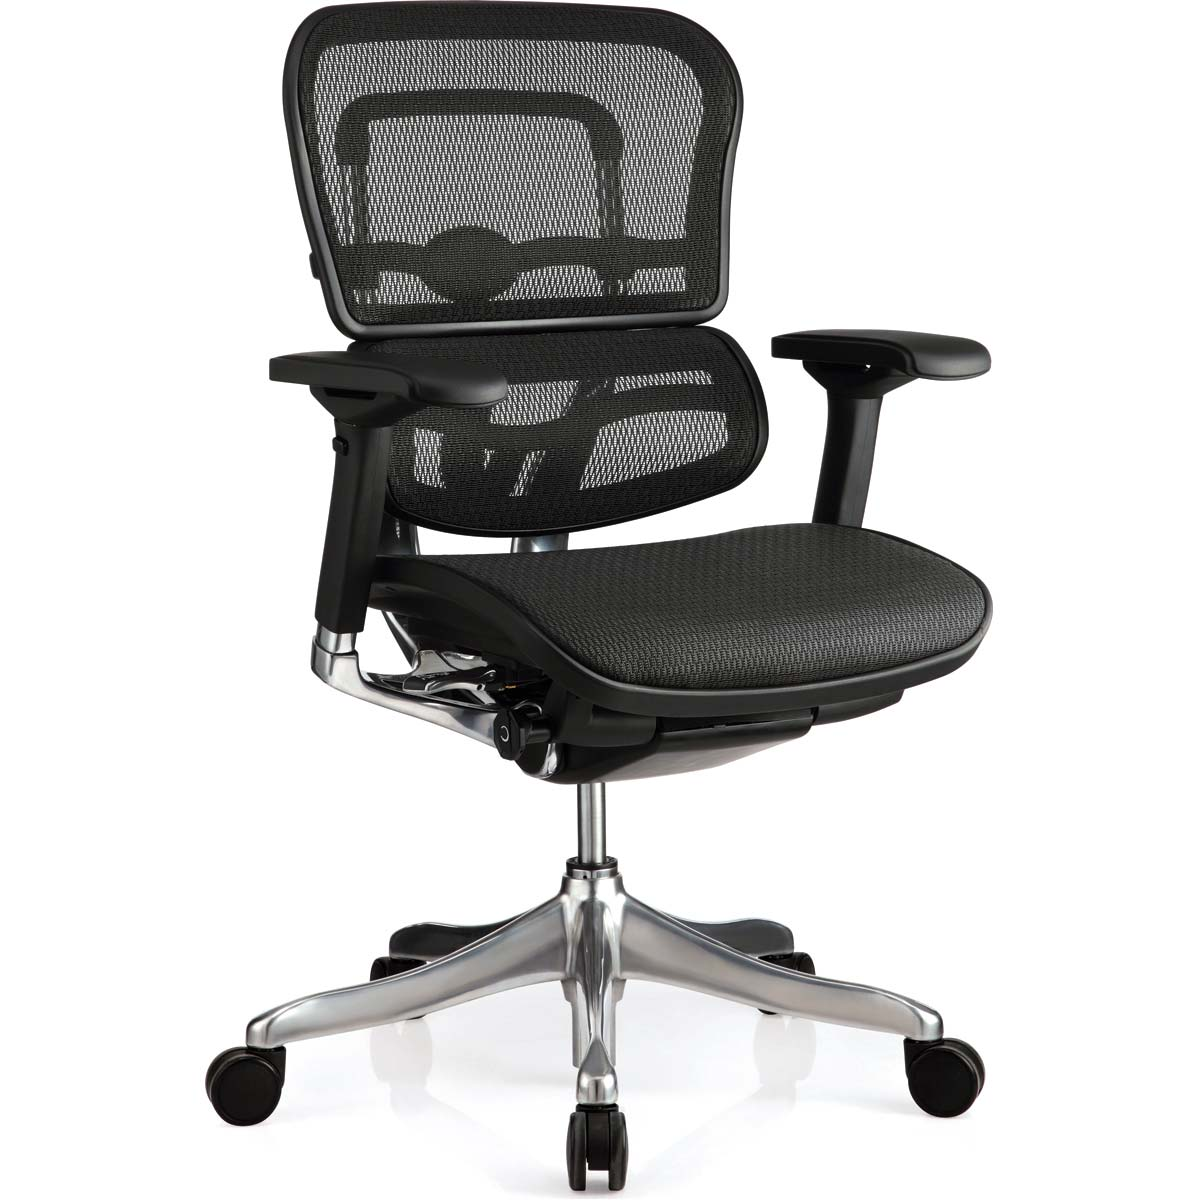 Raynor Chairs Raynor Ergo Elite Chair Me5ergltlow Shop Raynor